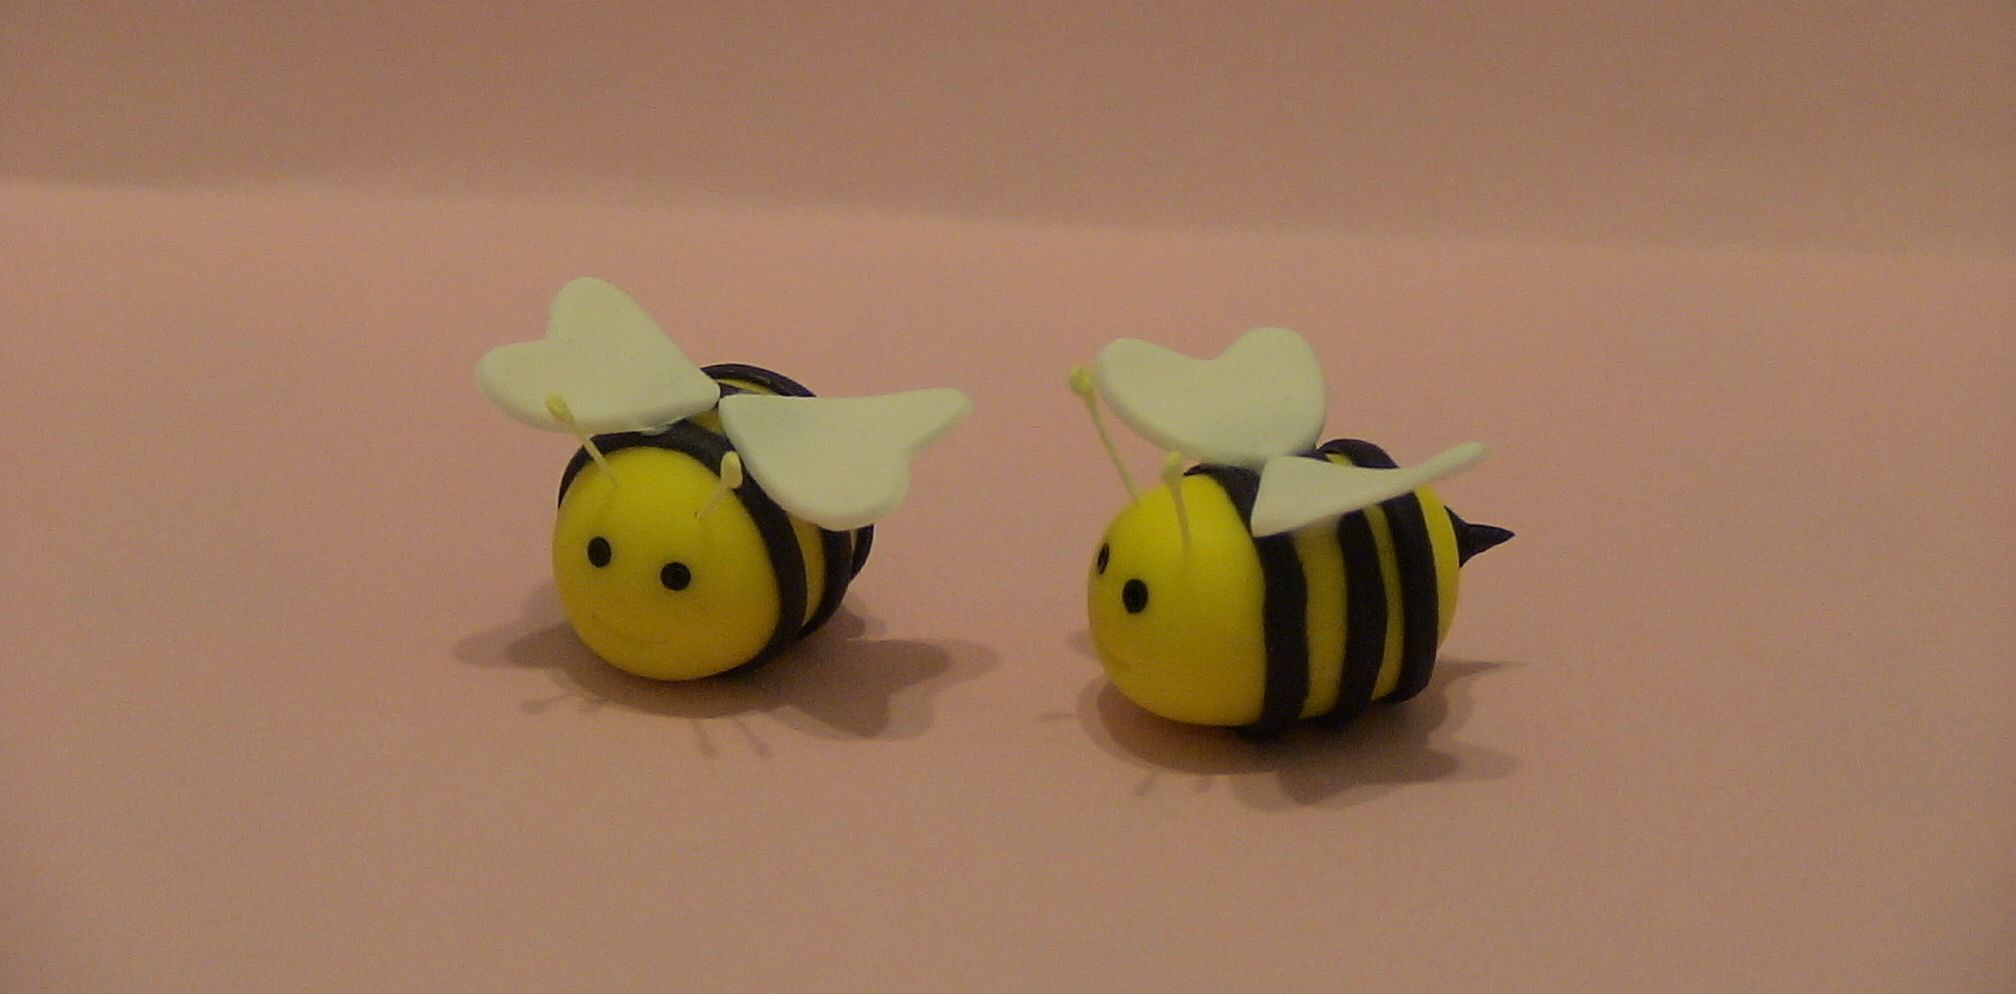 Bumble Bee - A pair of little bumble bees to go on a spring